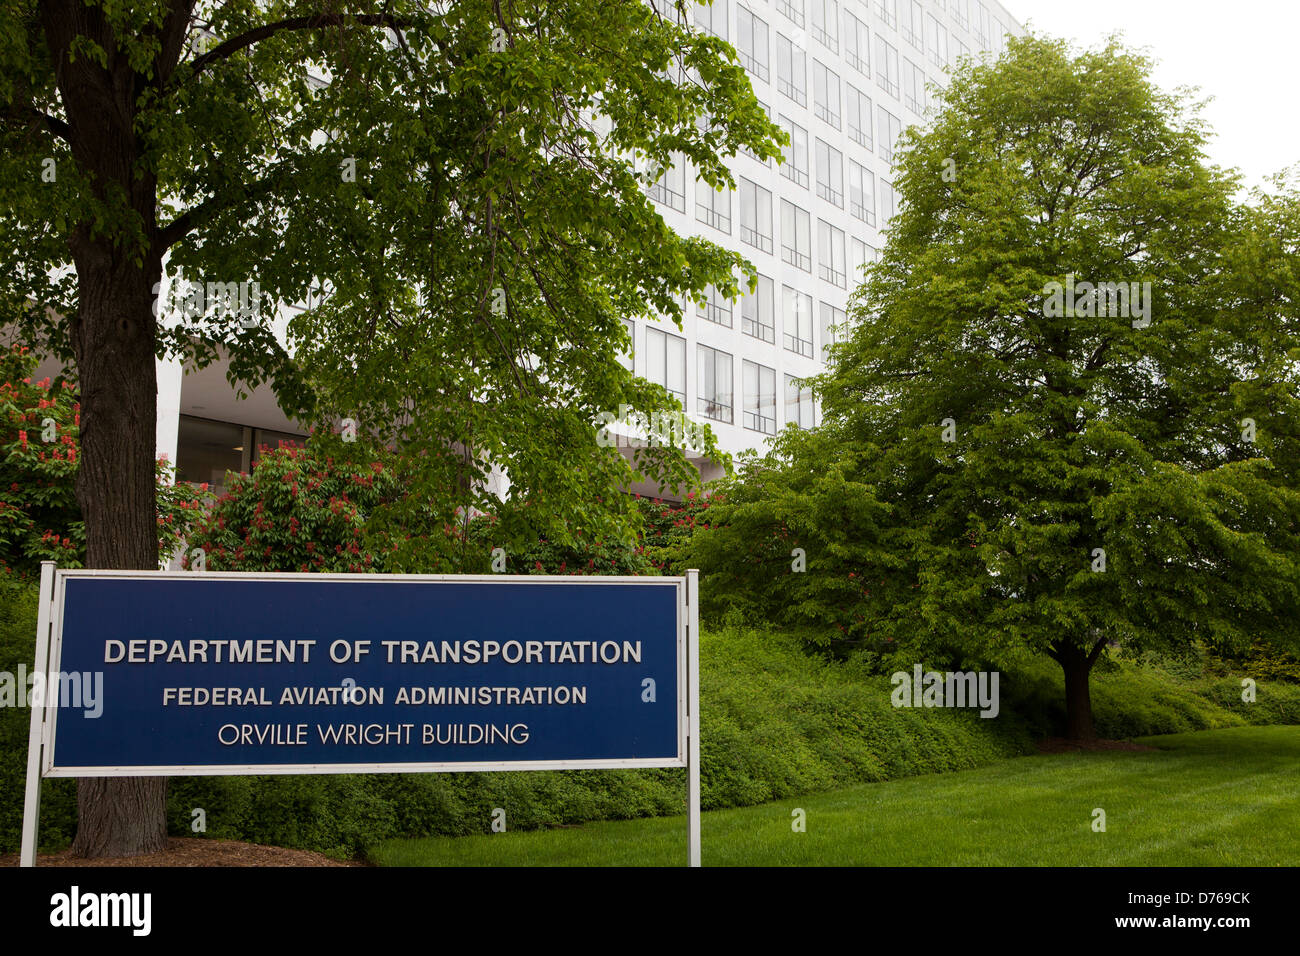 US Federal Aviation Administration headquarters building - Washington, DC USA - Stock Image